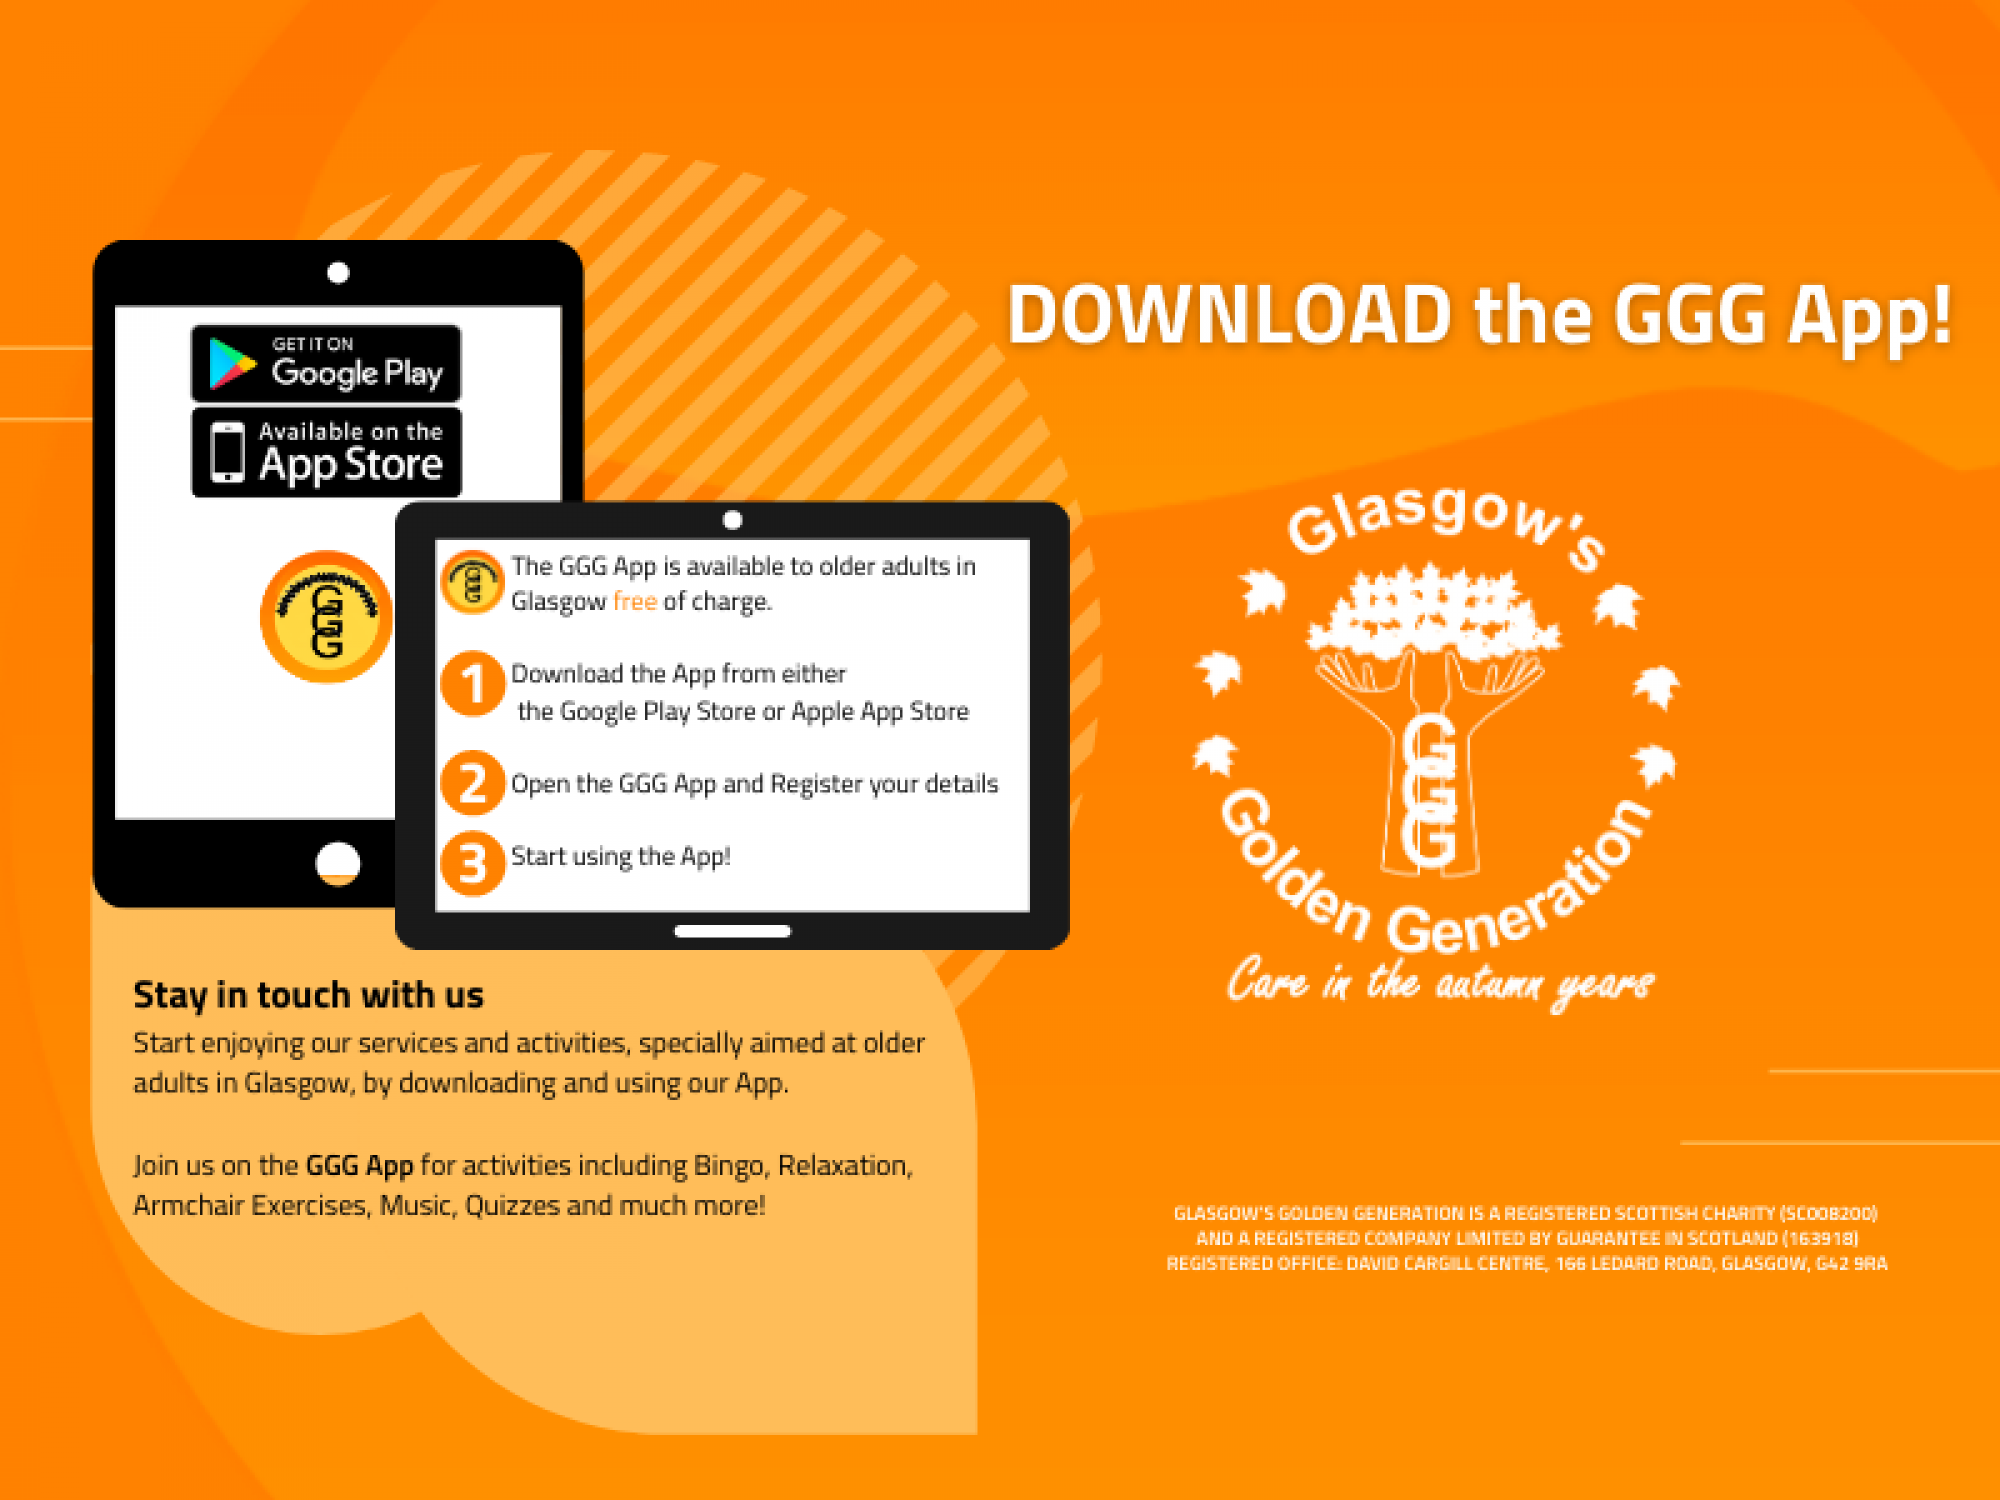 Download the GGG App